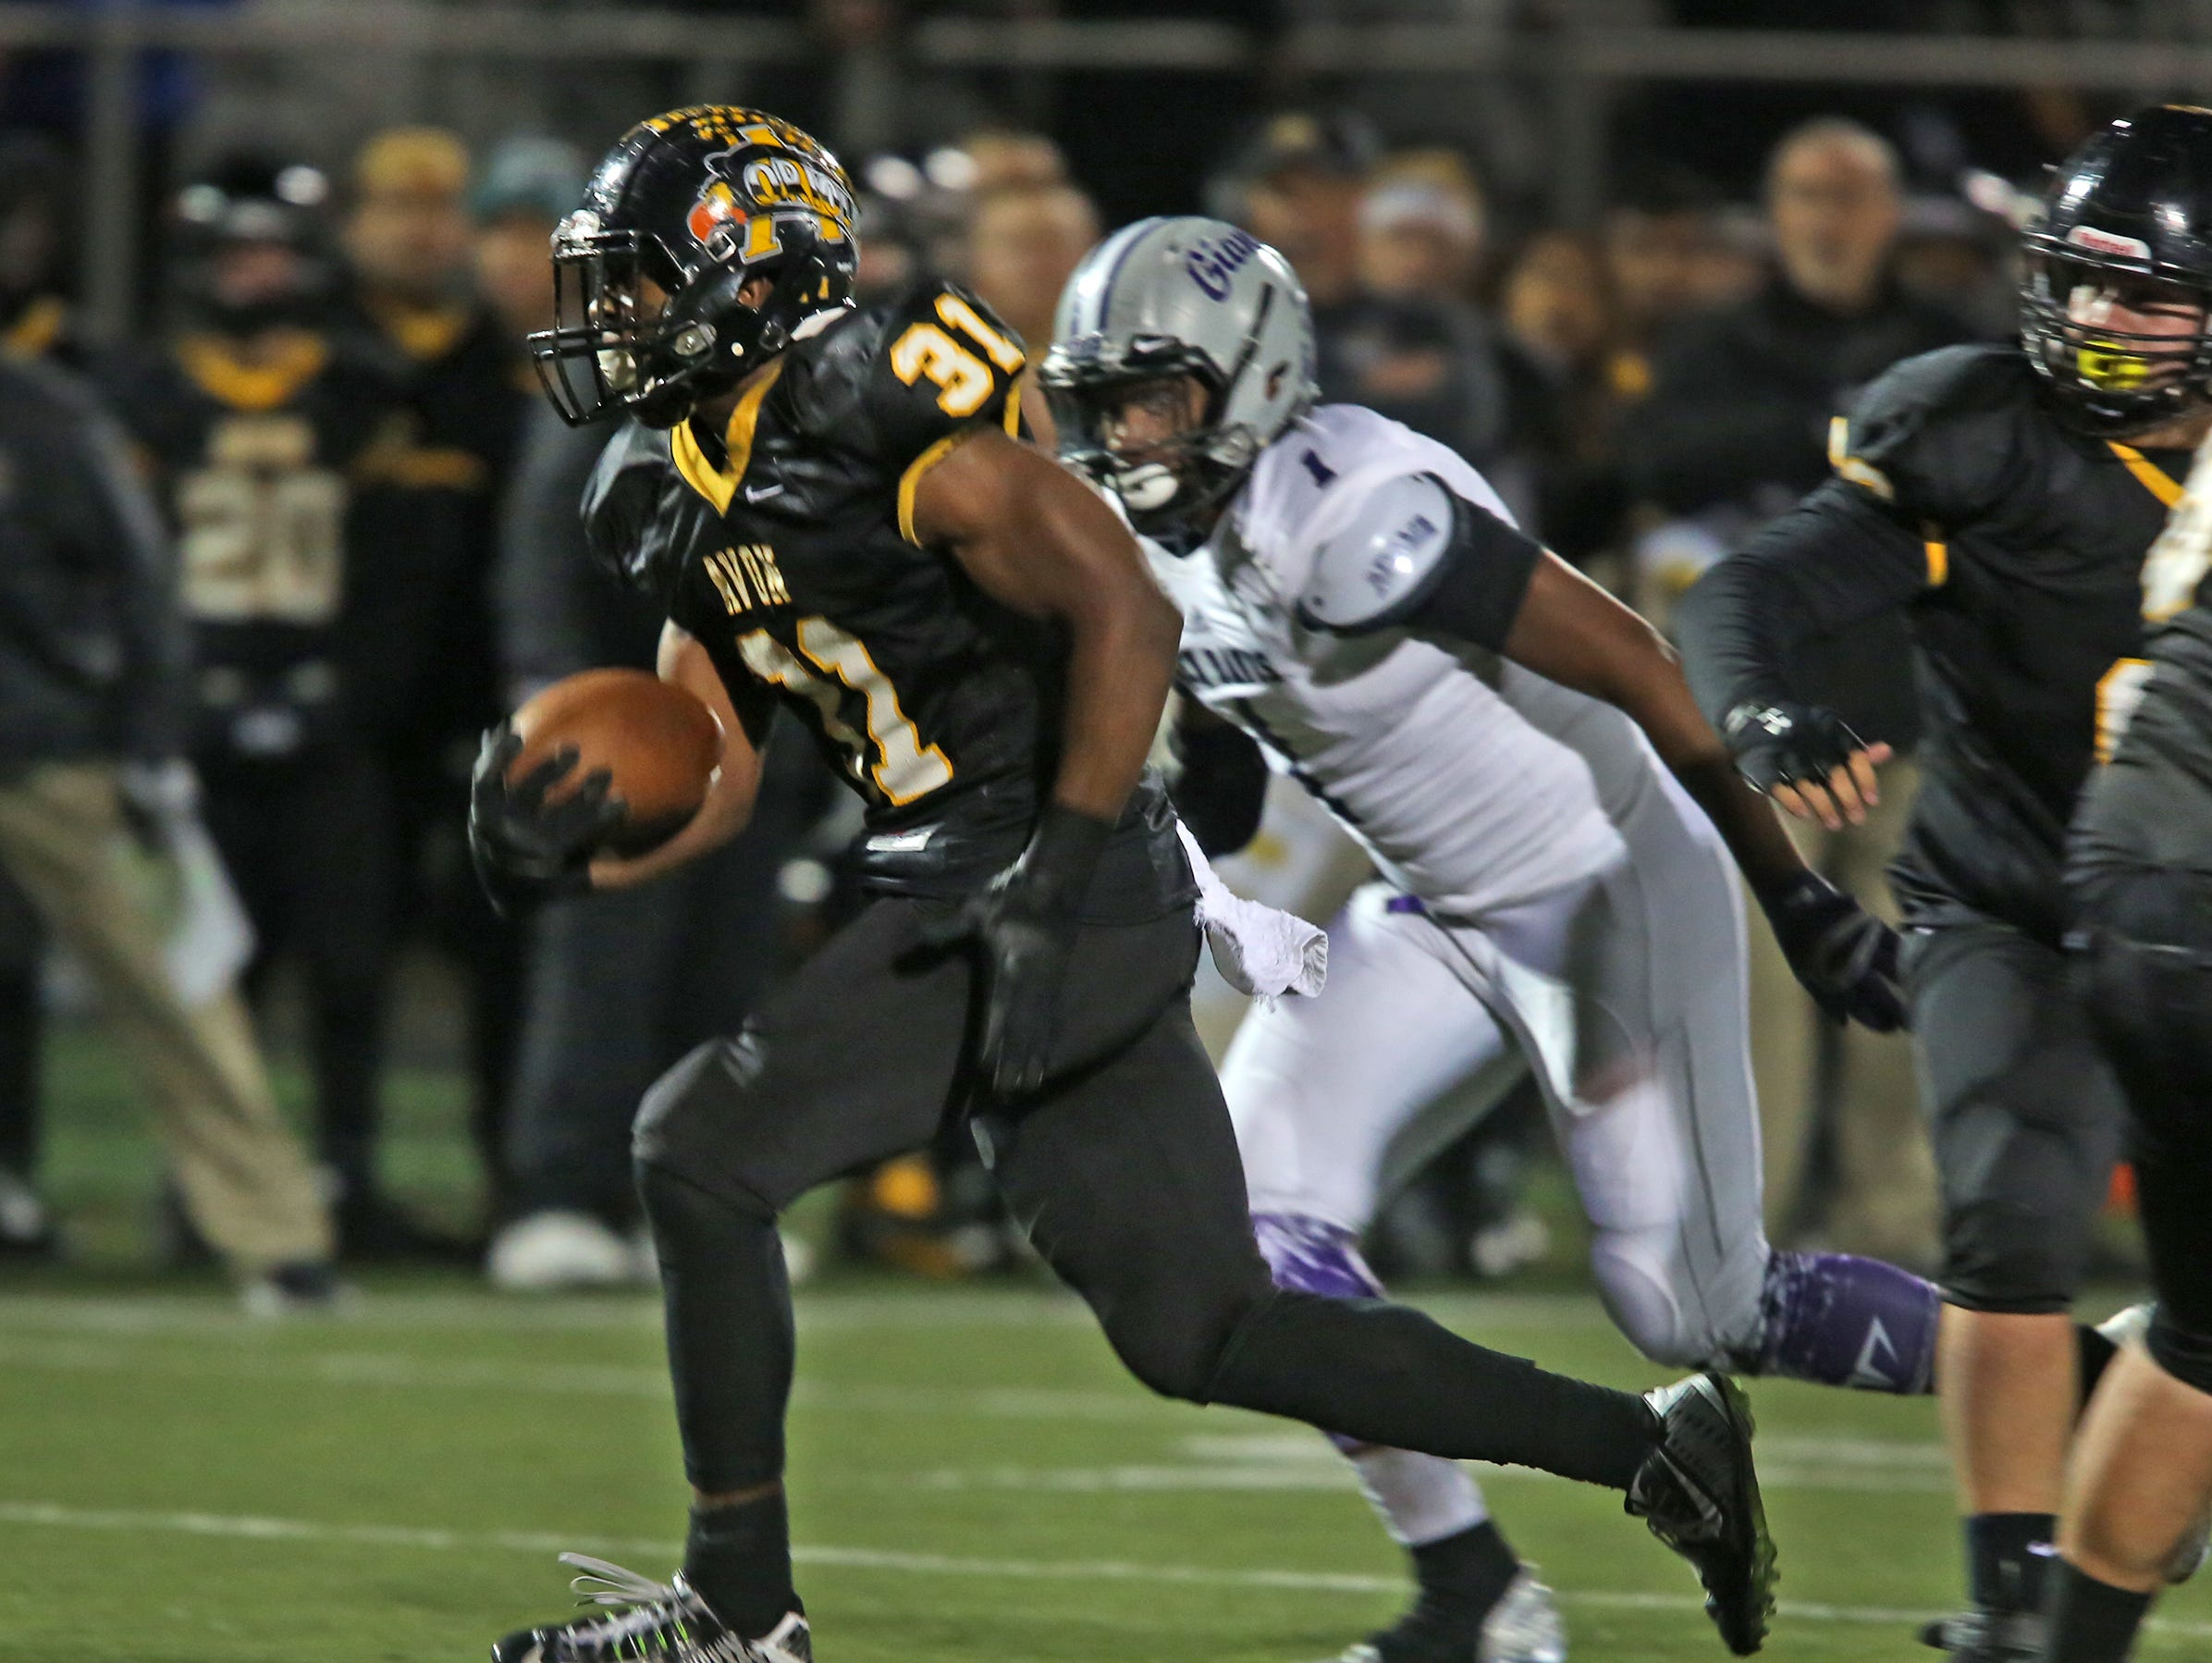 Avon's Bryant Fitzgerald takes off for a touchdown in sectional action against Ben Davis, Oct. 30, 2015.